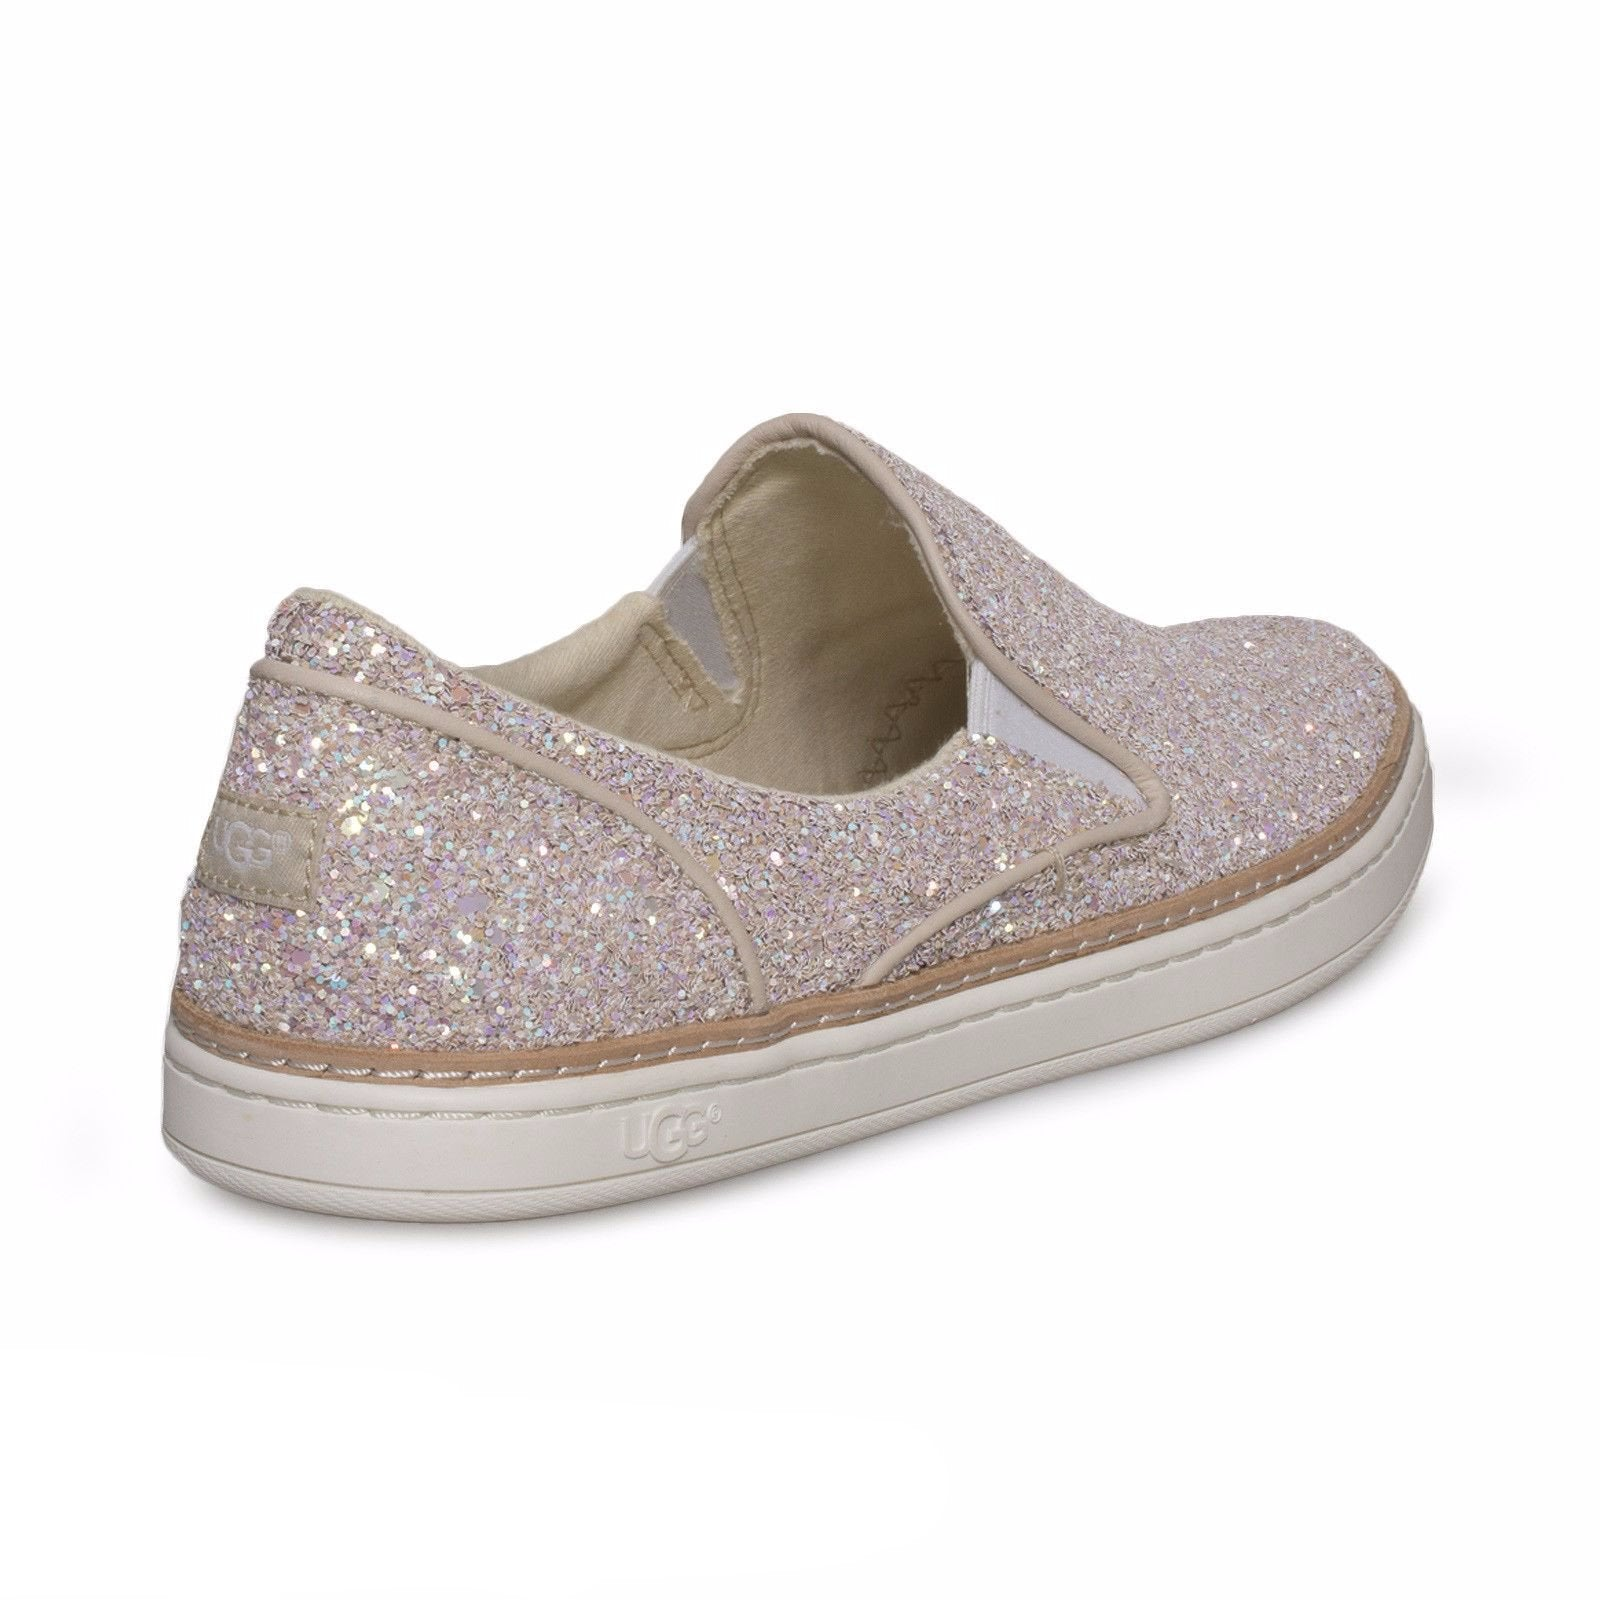 1b8a4fd6103 UGG Adley Chunky Glitter Powder Shoe